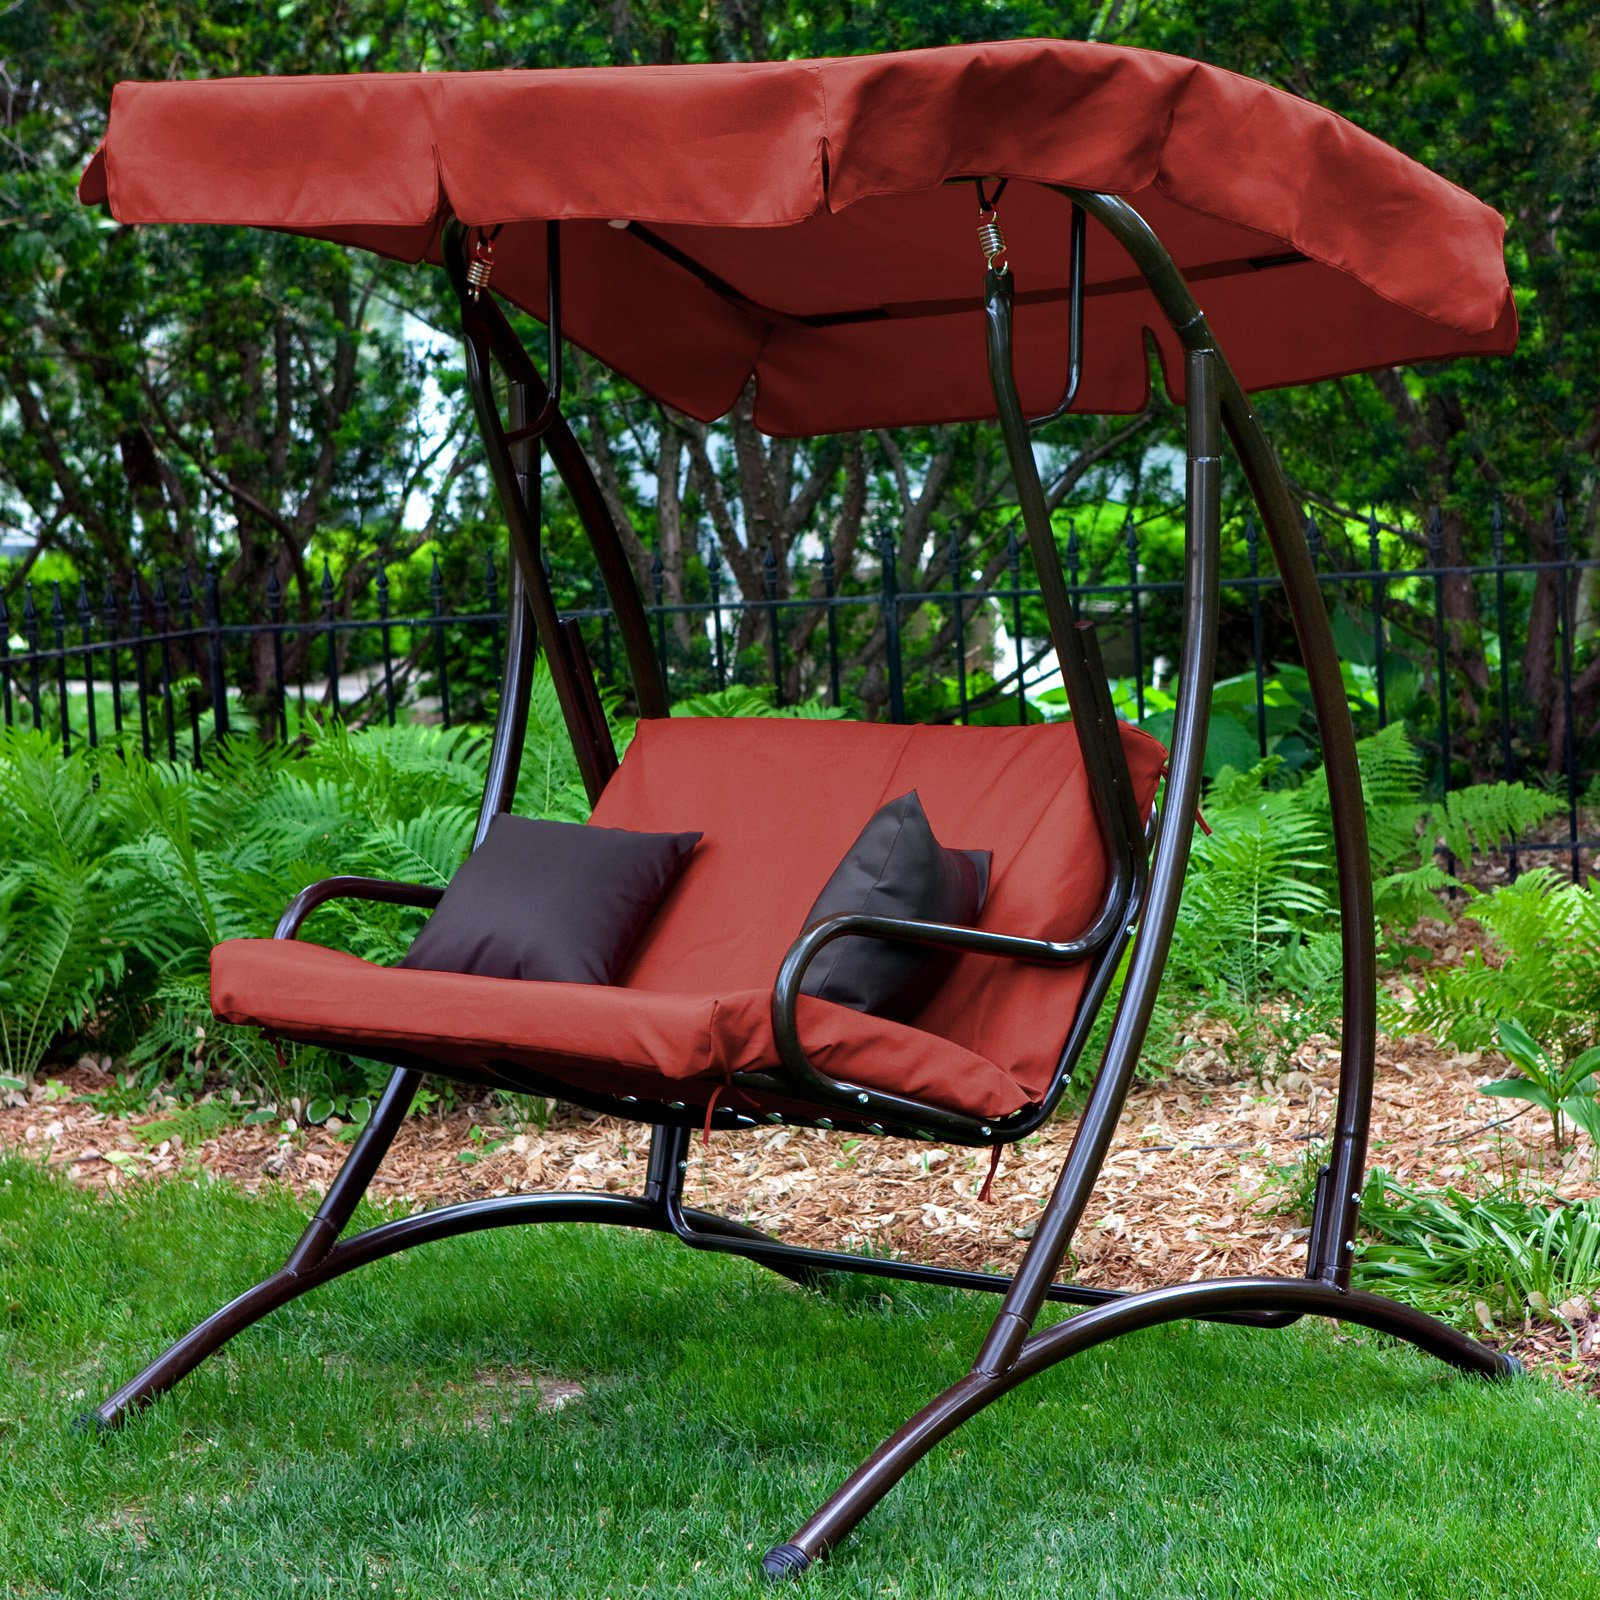 How To Replace A Canopy On An Outdoor Swing (View 11 of 30)